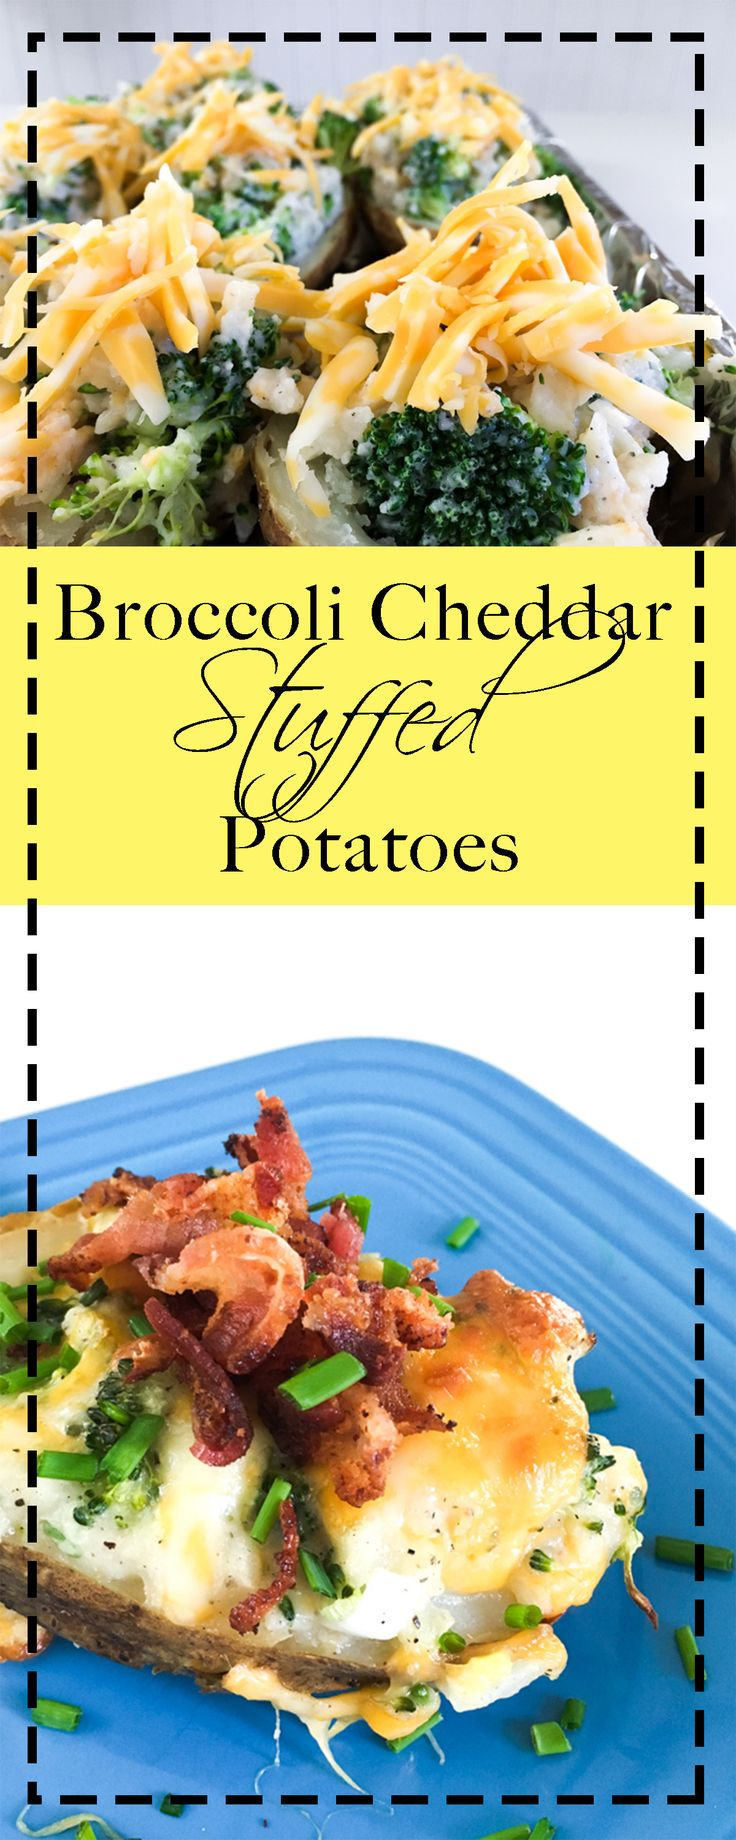 Twice baked potatoes get a healthy upgrade. These are loaded with veggies and flavor and pair perfectly with a salad for dinner.